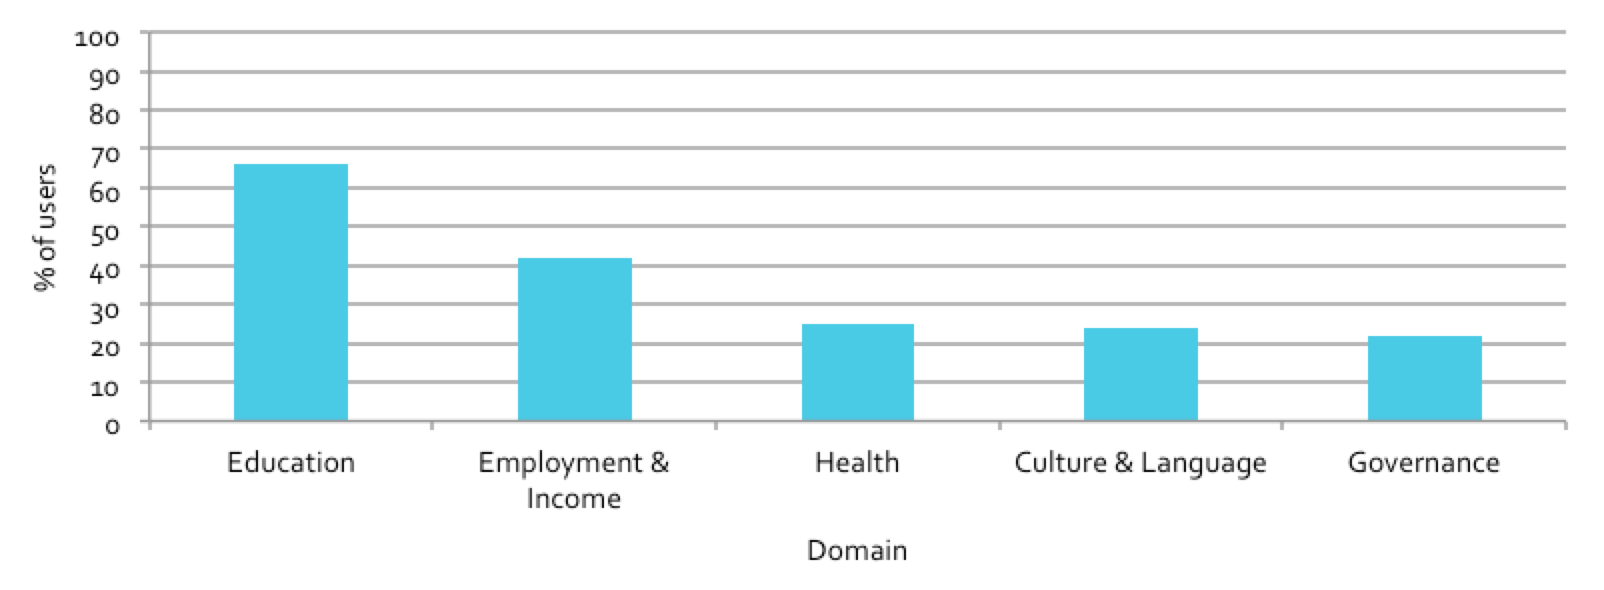 Figure 5.3: Proportion of users engaged in priority domains